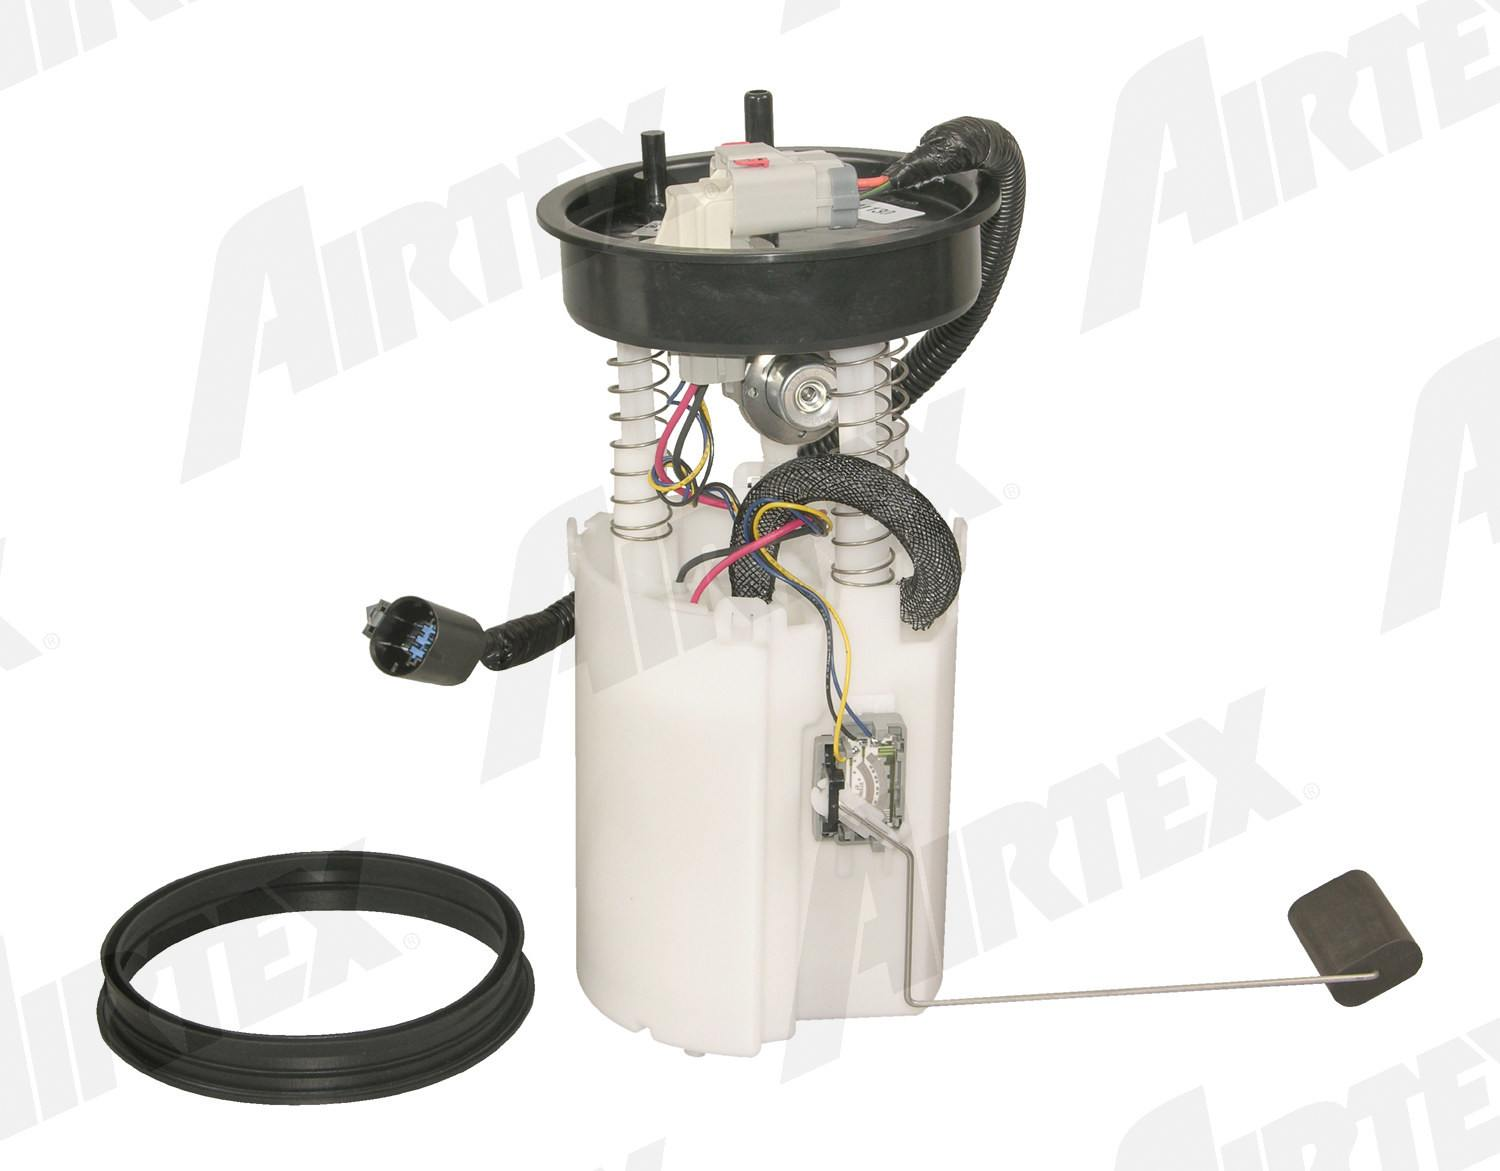 AIRTEX AUTOMOTIVE DIVISION - Fuel Pump Module Assembly - ATN E7087M